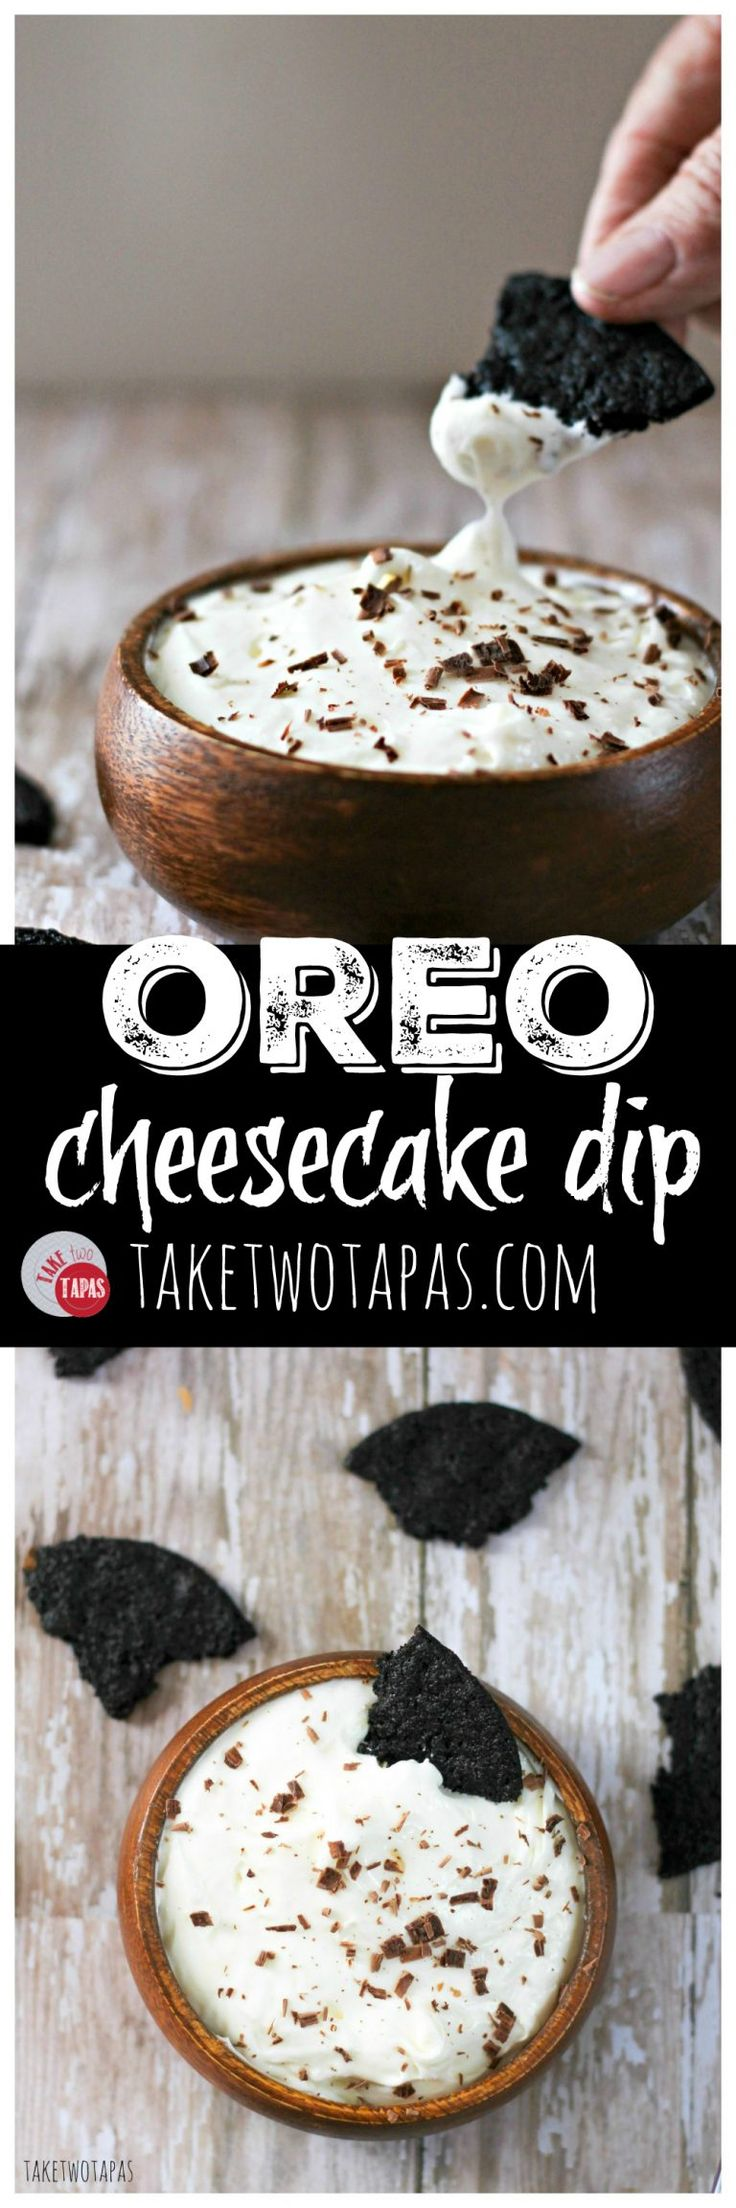 Oreo Cookies are are the best of chocolate cookies and a minty cream filling! Now the great flavors of the Oreo cookie are combined with cream cheese to make a cheesecake dip that will remind you of Oreo cookies and milk. Made with homemade chocolate wafers to dip! Oreo Cheesecake Dip Recipe with Homemade Chocolate Wafers | Take Two Tapas